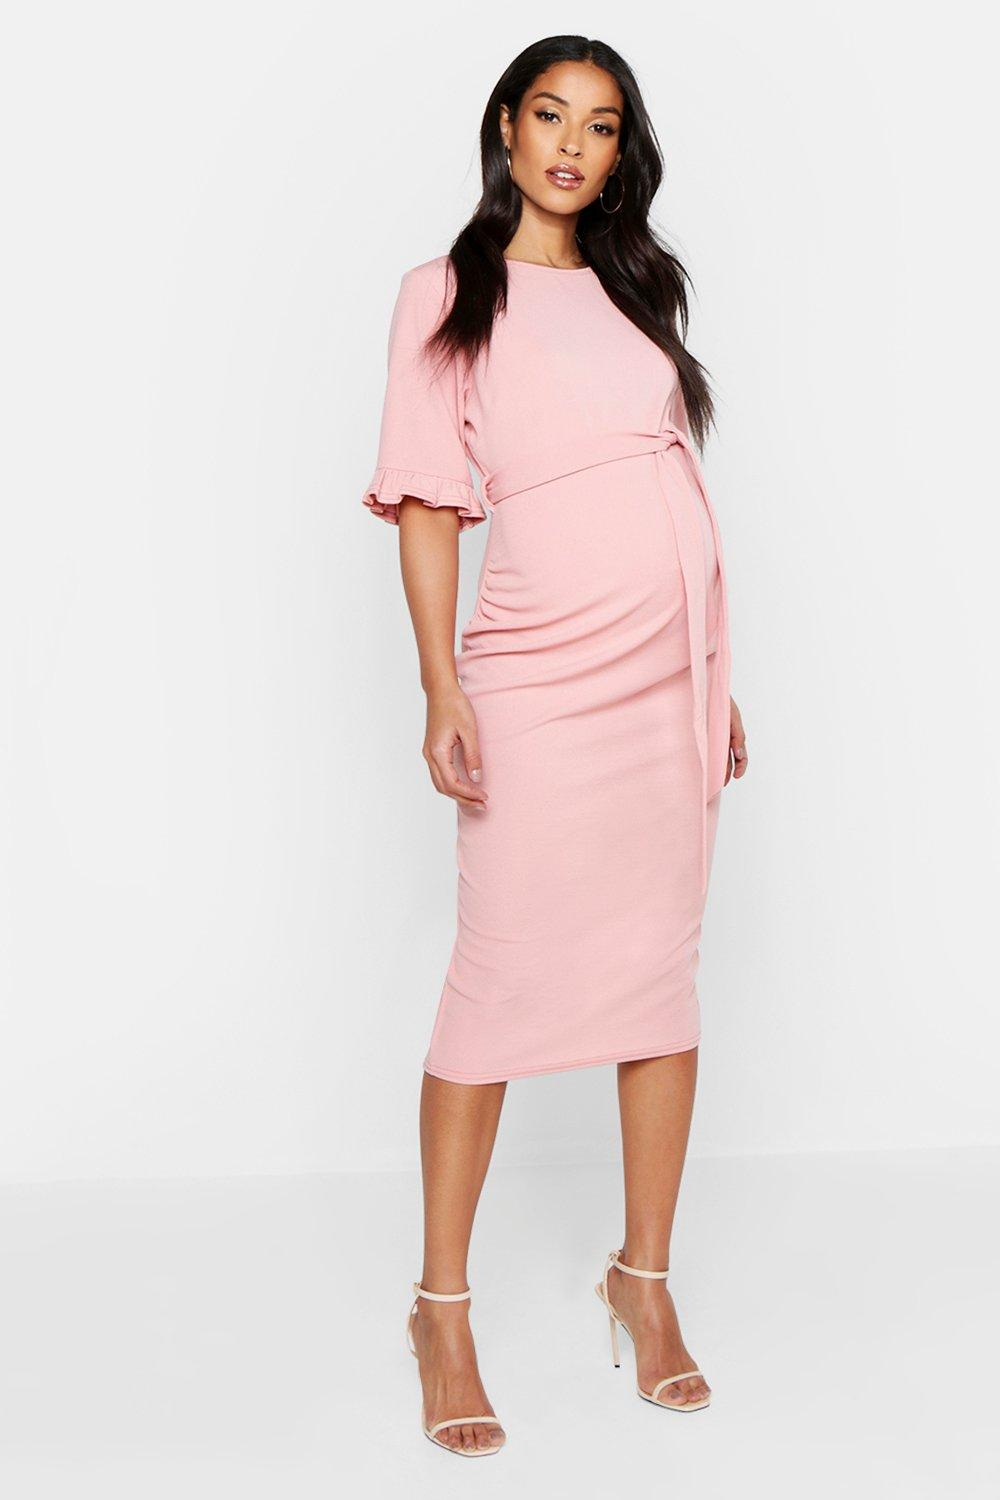 Vintage Maternity Clothes History Womens Maternity Ruffle Midi Bodycon Dress - pink - 12 $11.20 AT vintagedancer.com